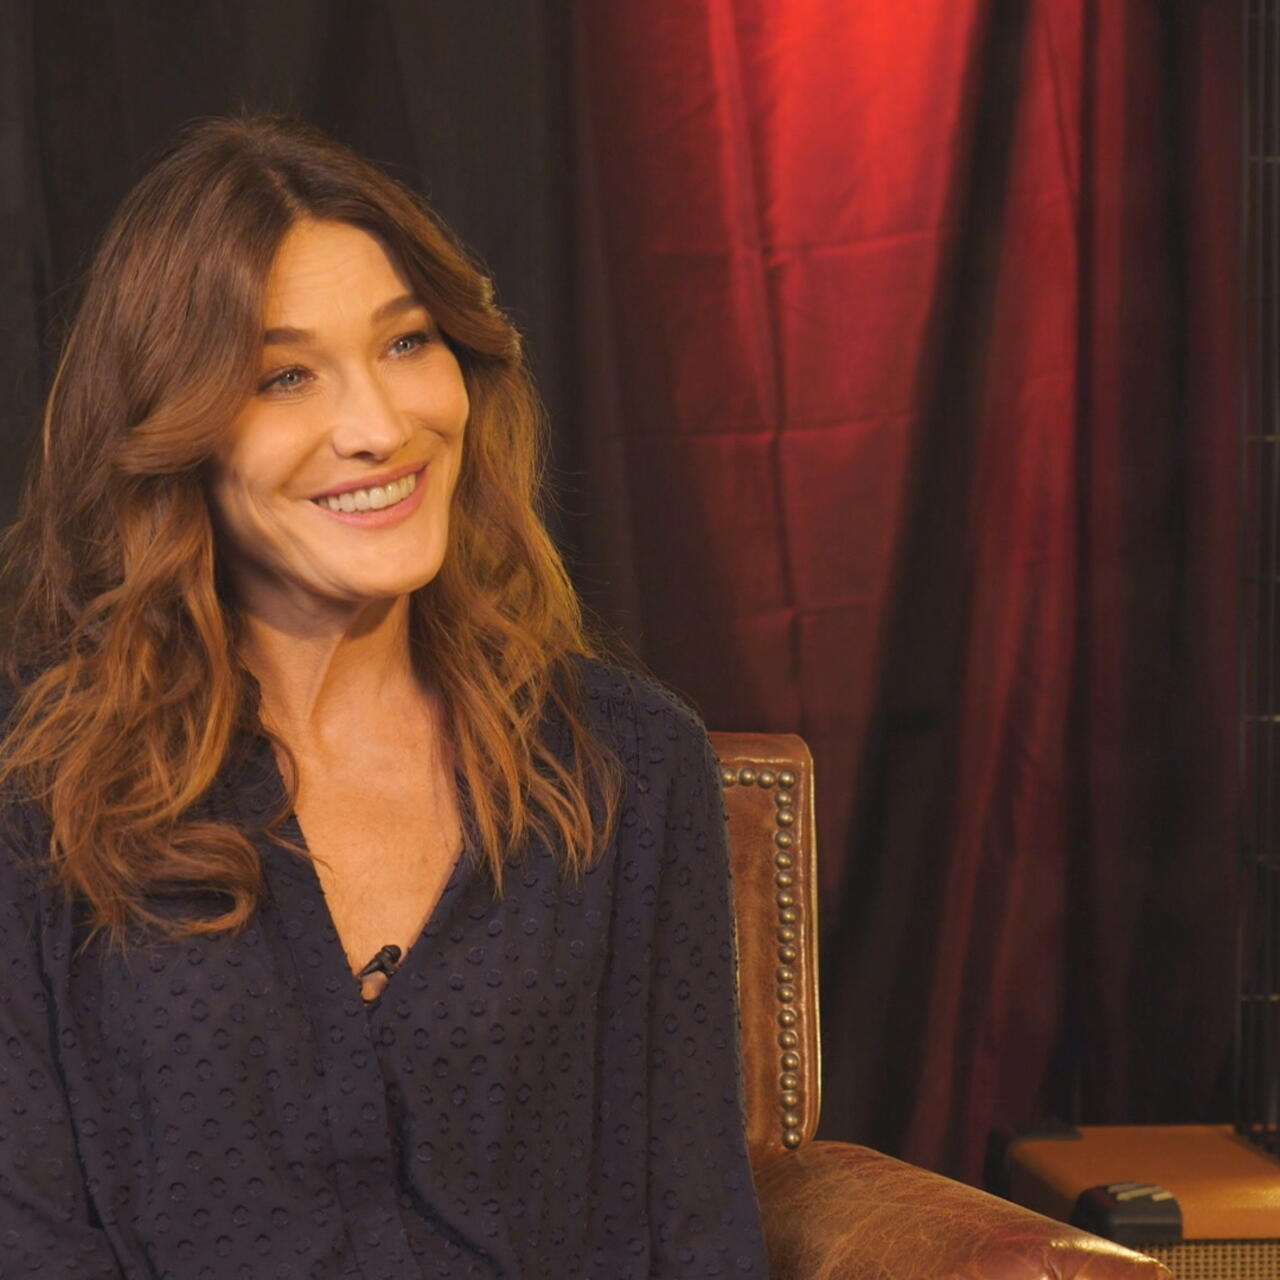 Carla Bruni on her new album and making music during lockdown - Encore!